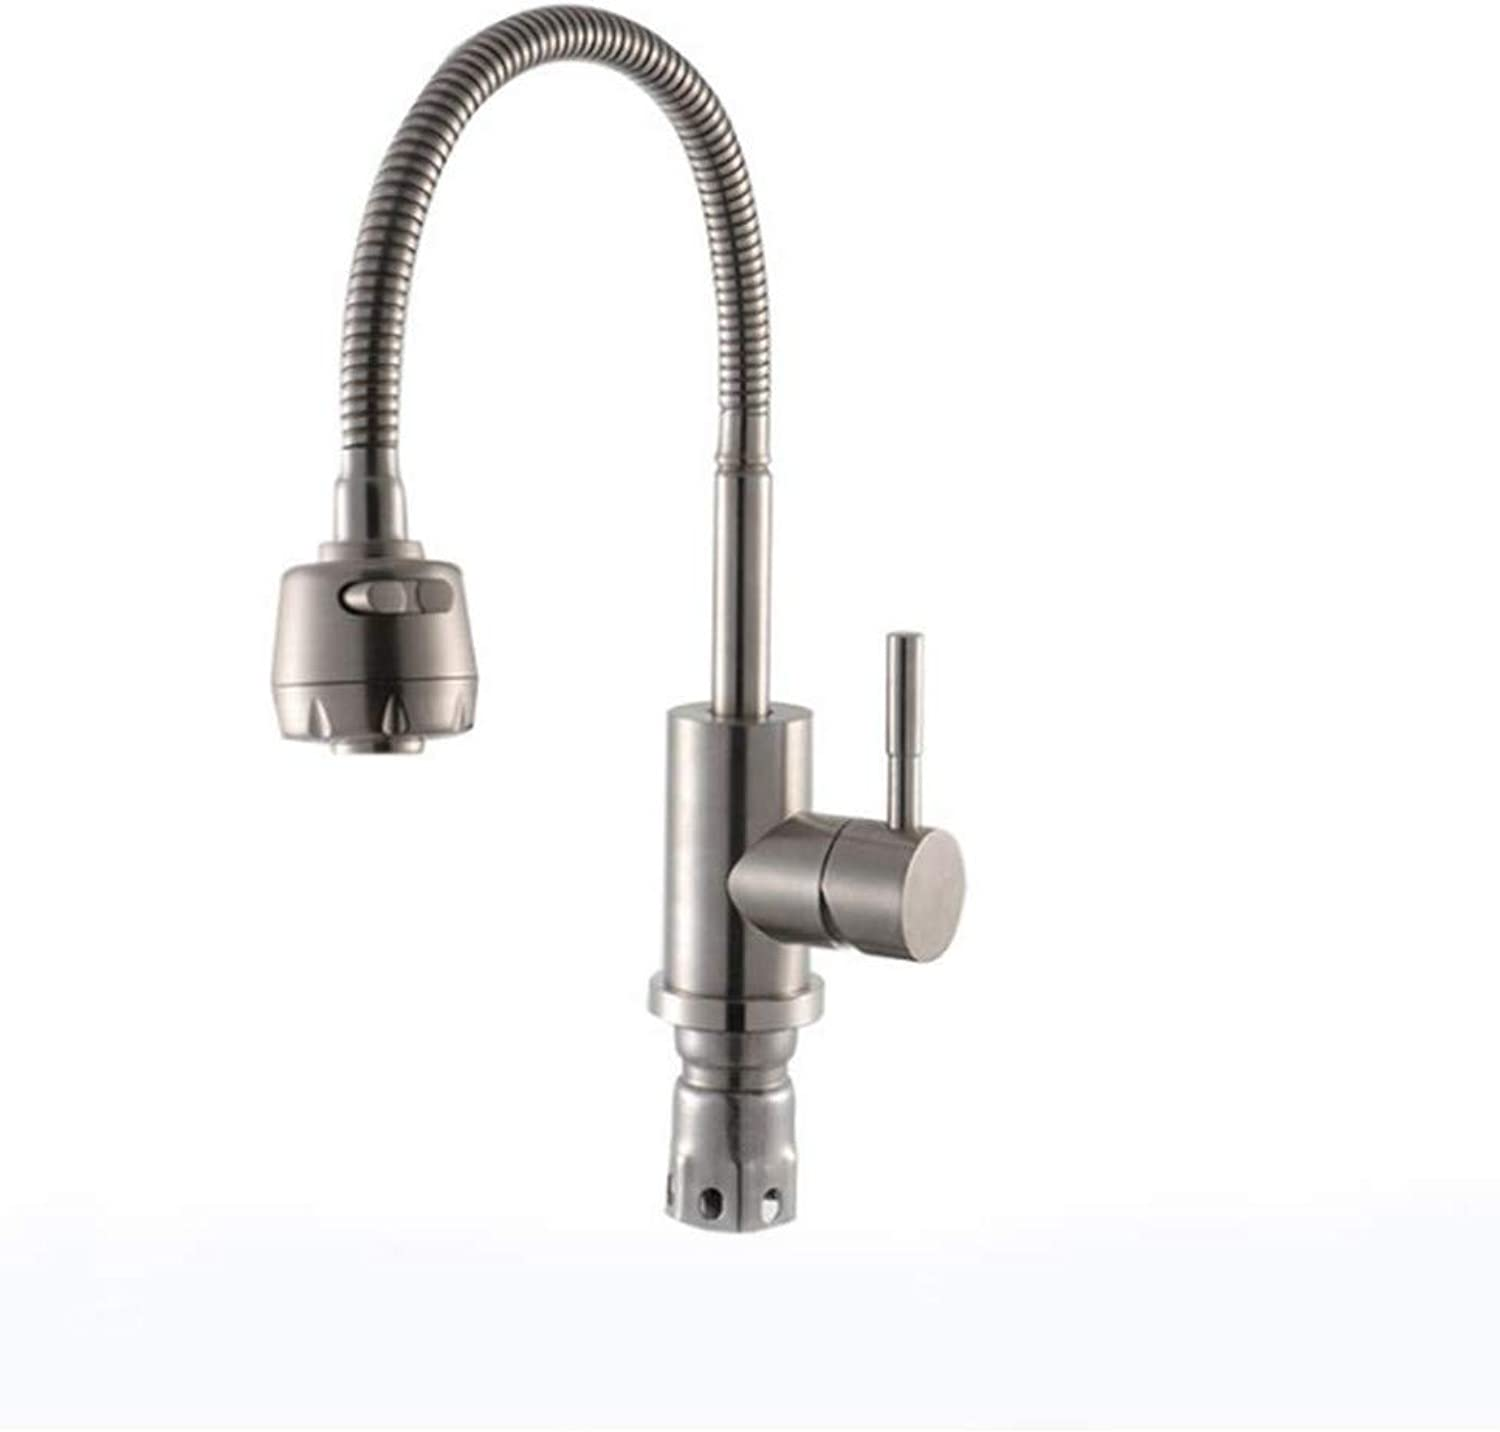 Water Tap Kitchen Taps Faucet Modern Kitchen Sink Taps Stainless Steelthe Sink Faucet 360 Turns to The Kitchen Dishwash Basin Double Faucet